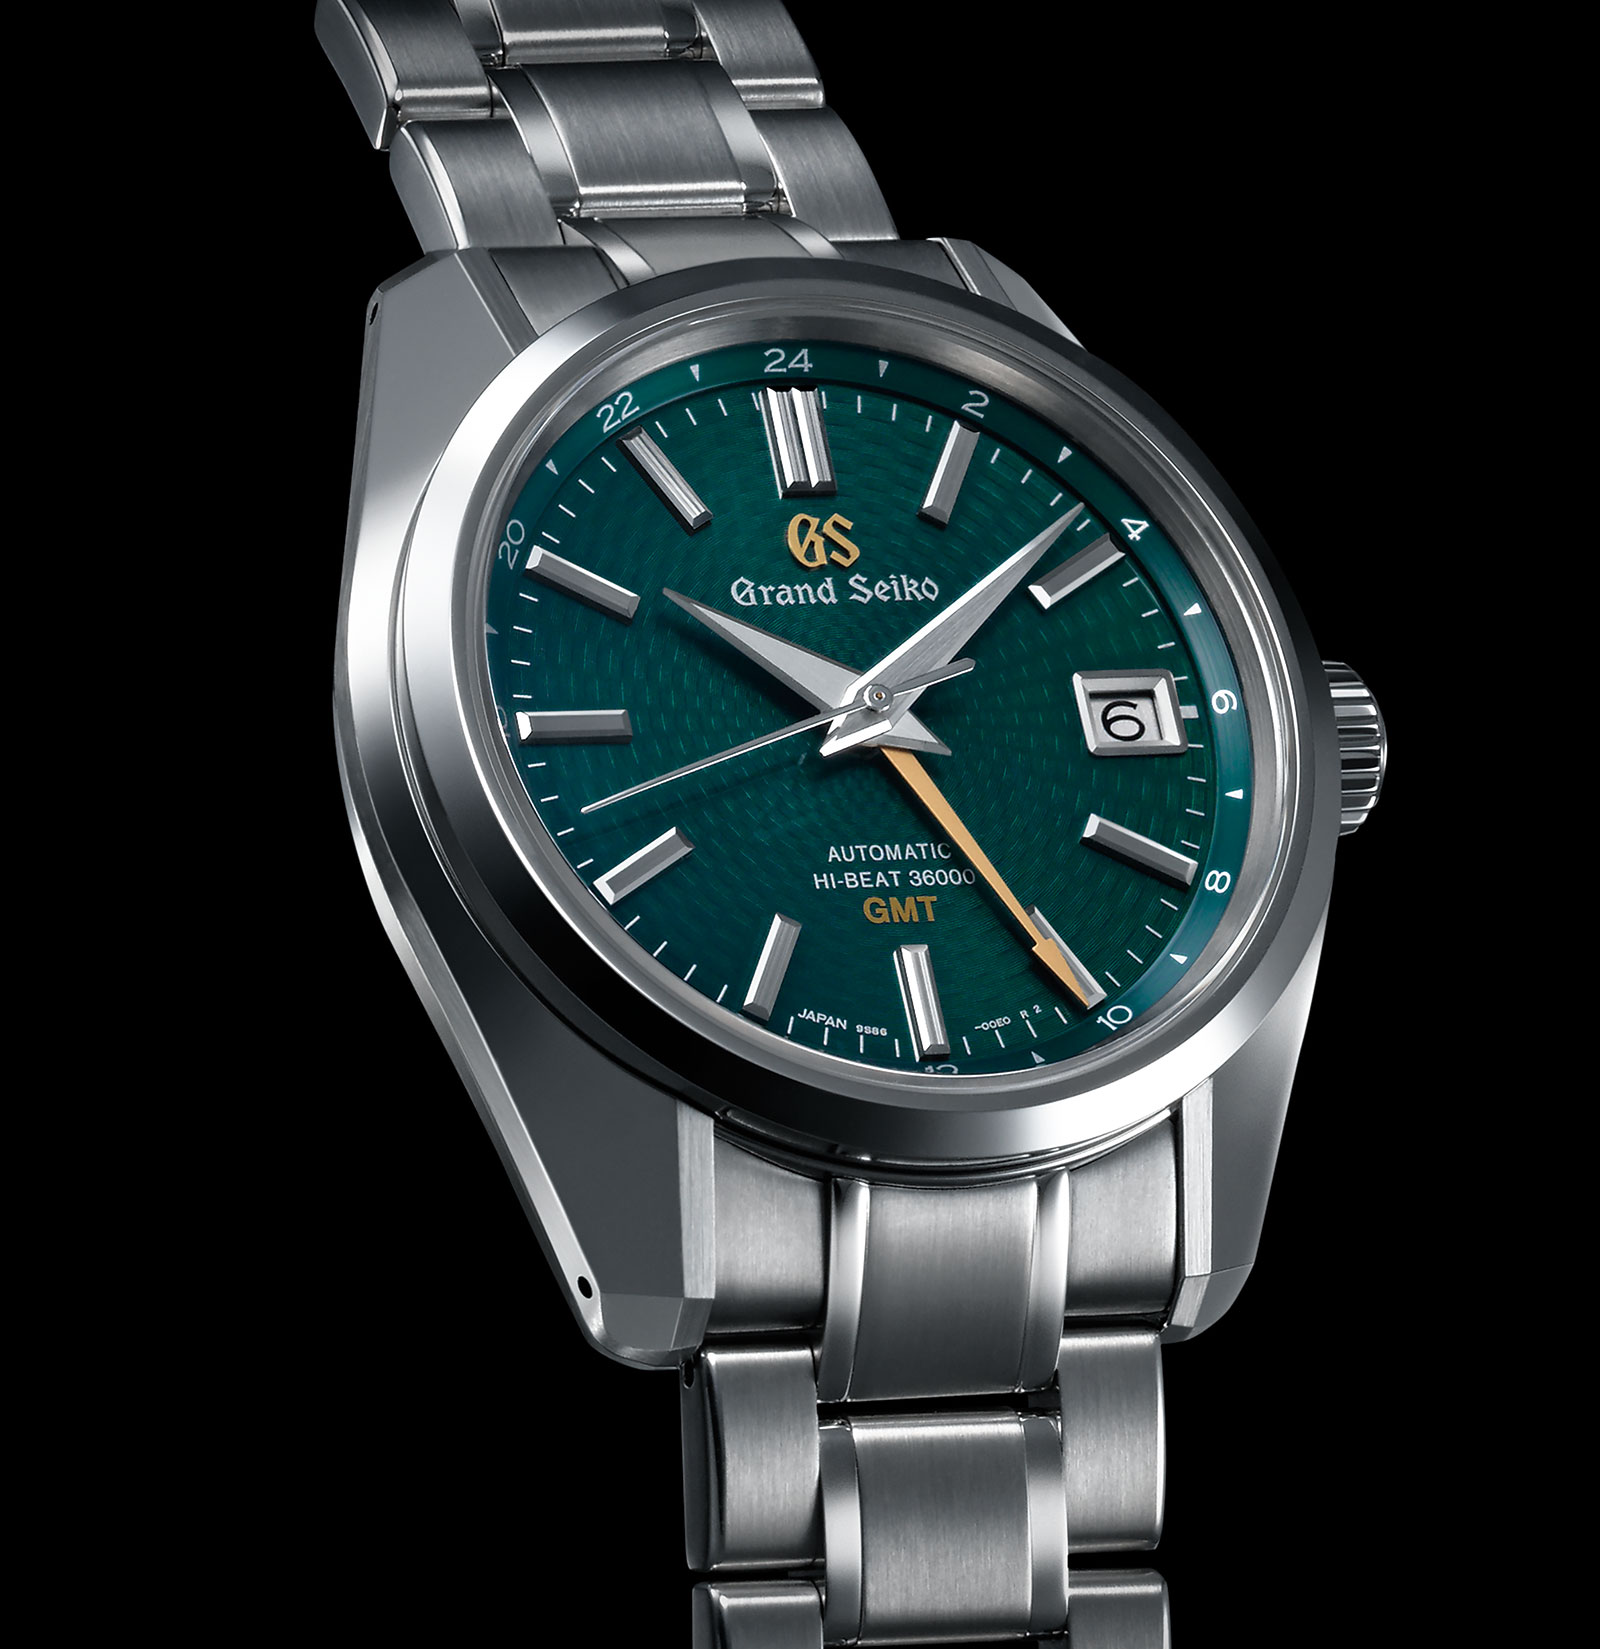 Grand Seiko Hi-beat GMT Peacock SBGJ227-2